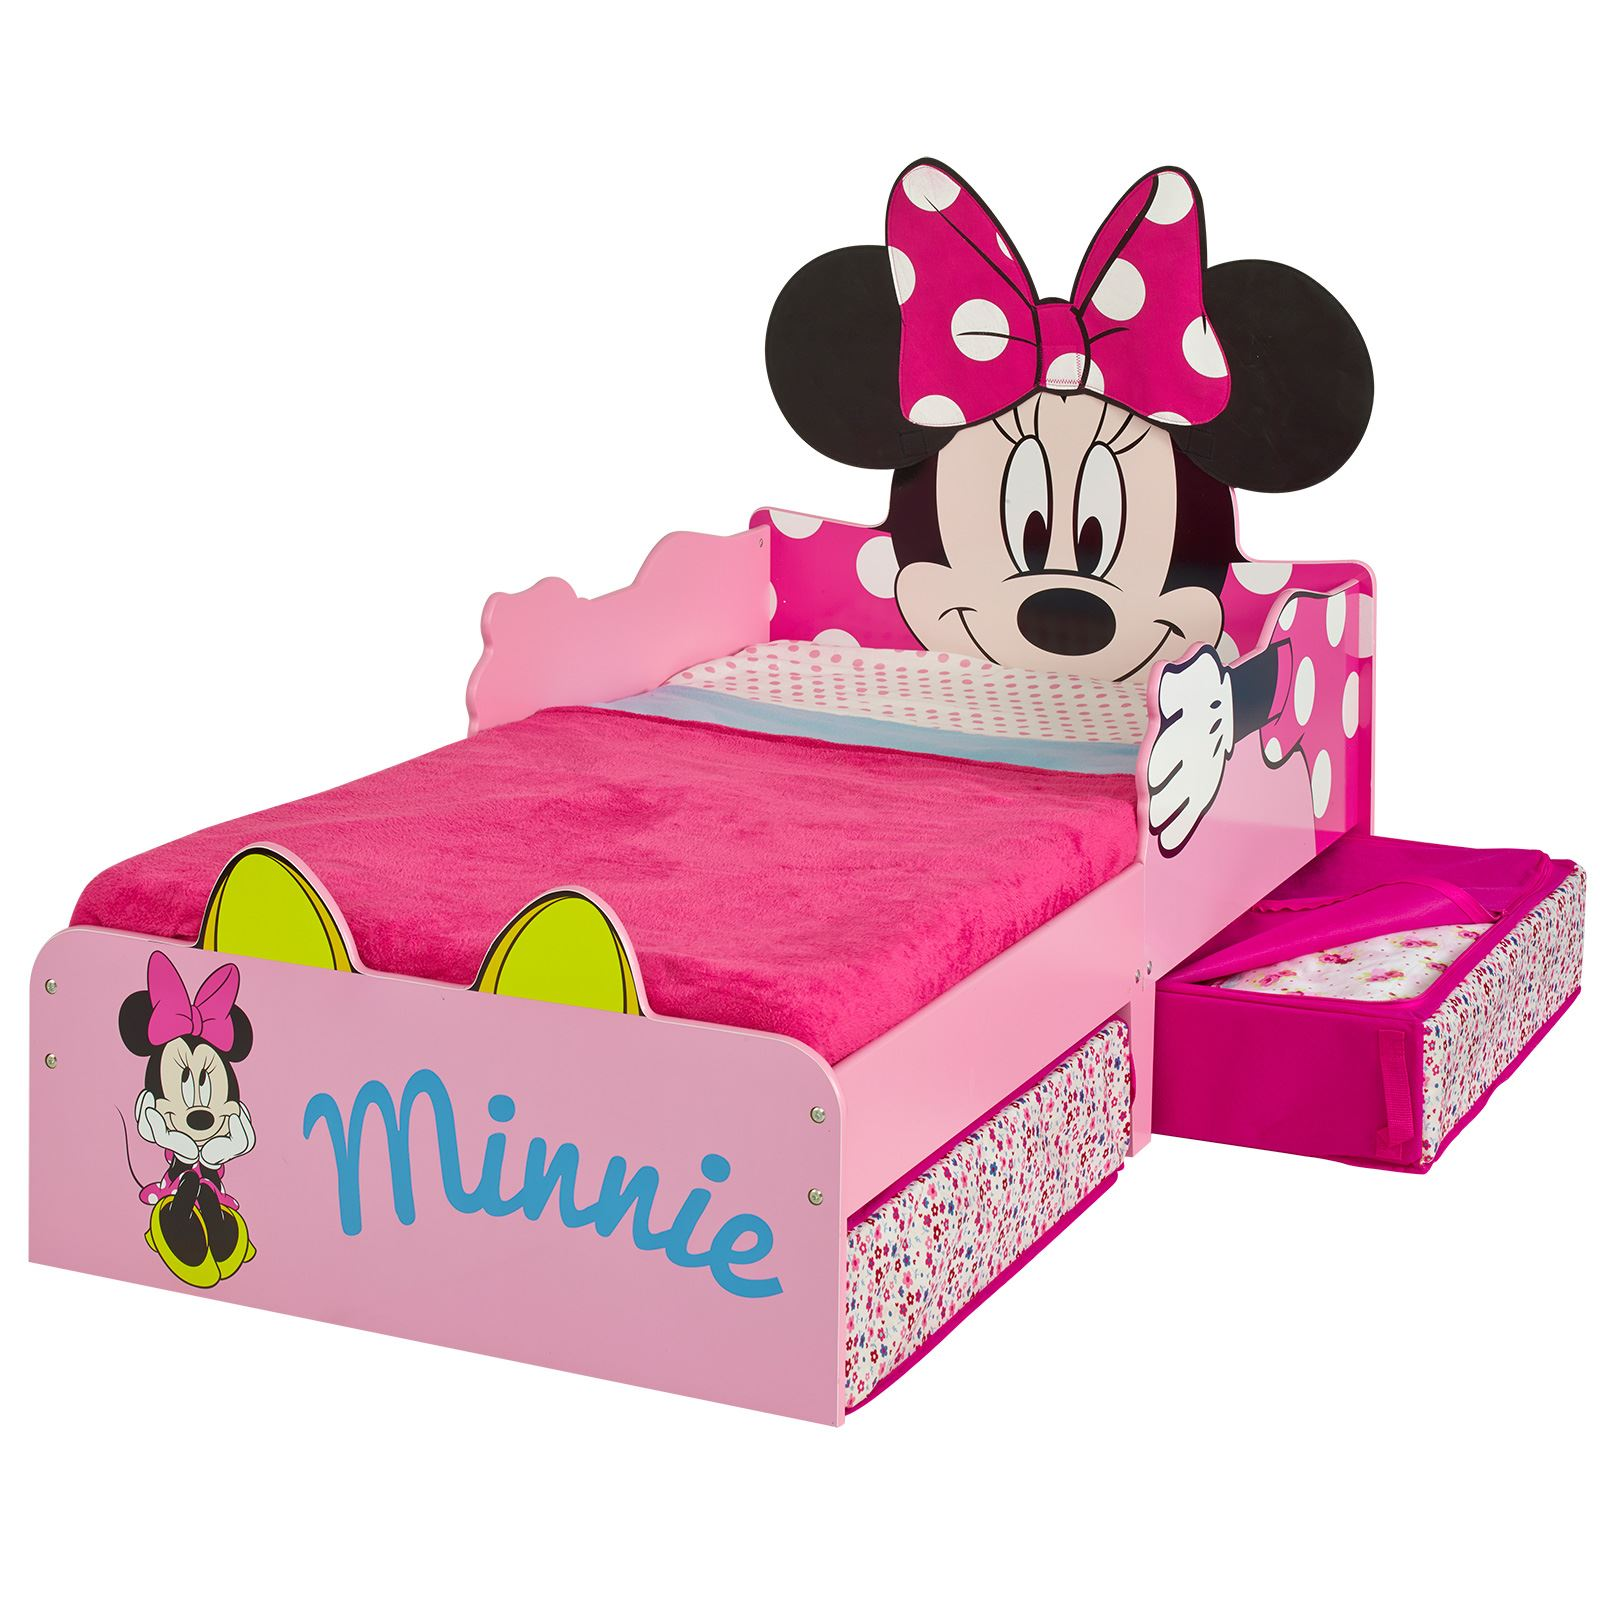 minnie mouse mdf junior kleinkind bett mit lager neu disney ebay. Black Bedroom Furniture Sets. Home Design Ideas